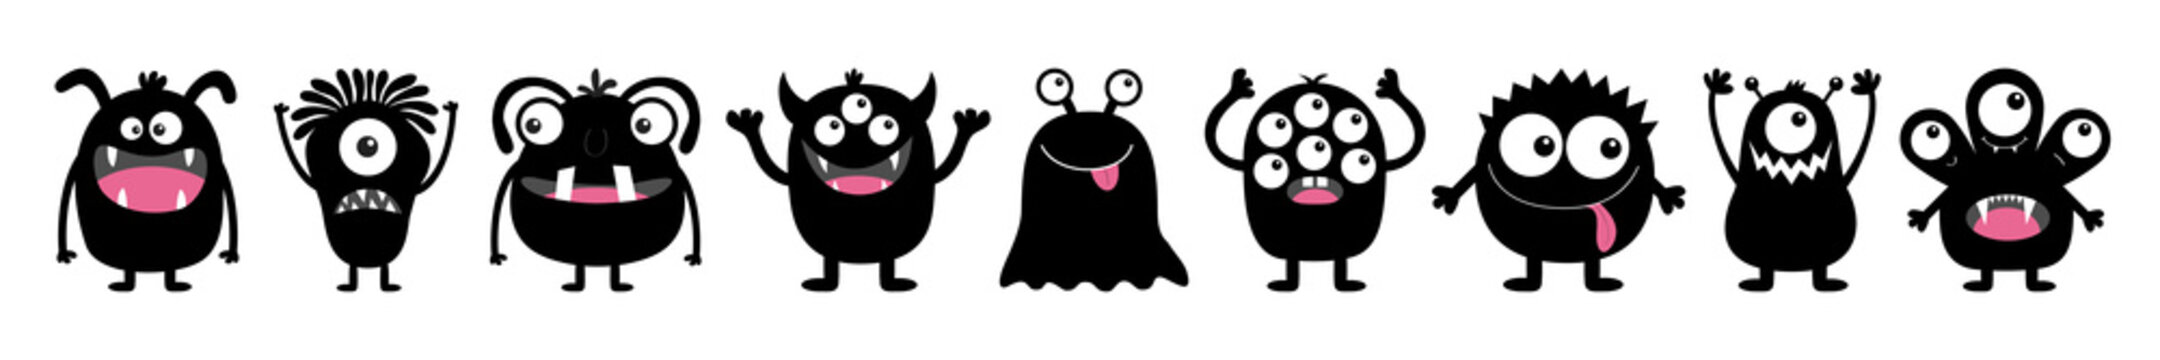 Monster black round silhouette icon set line. Happy Halloween. Eyes, tongue, tooth fang, hands up. Cute cartoon kawaii scary funny baby character. White background. Flat design.